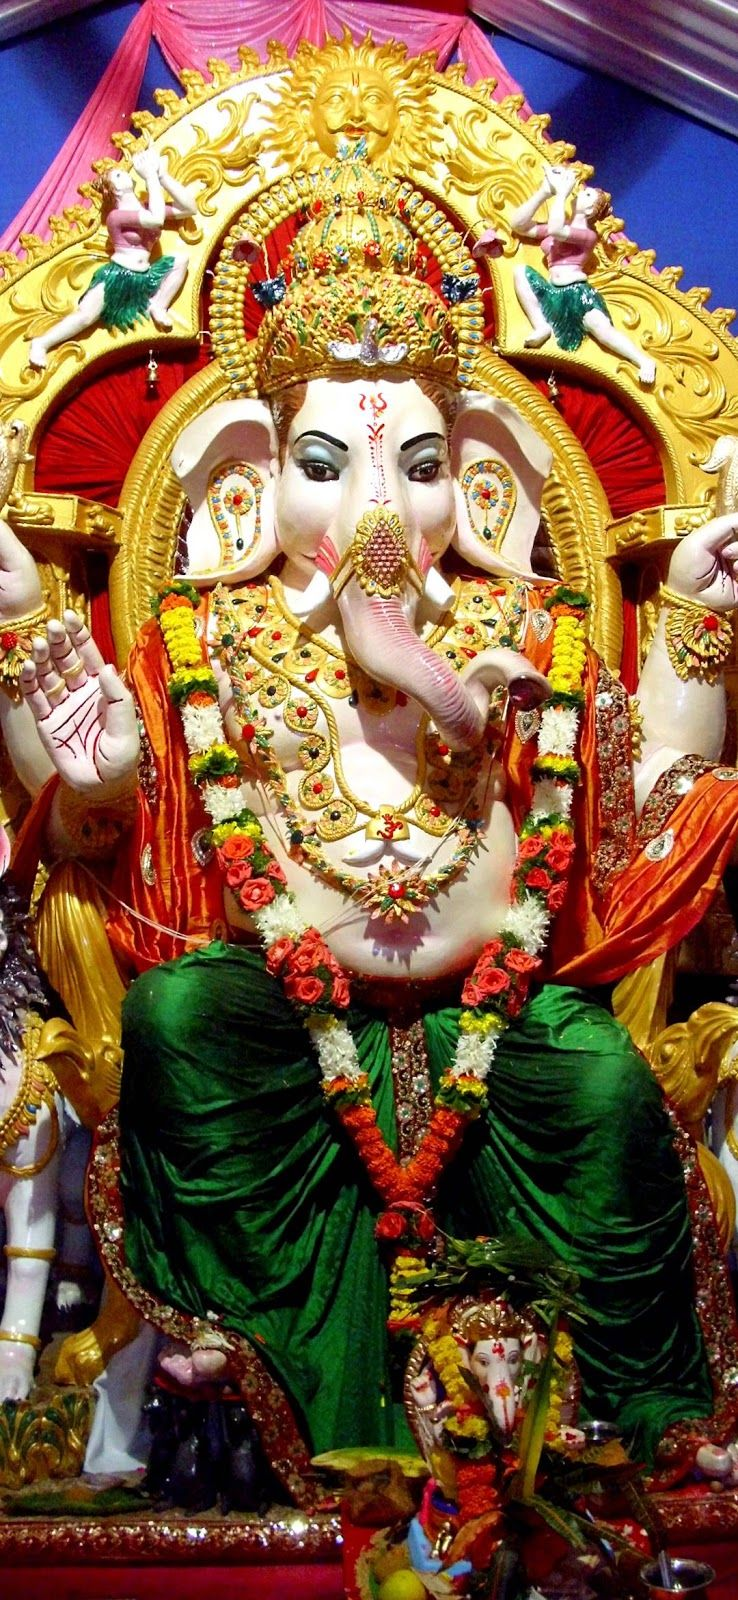 Lord Ganesha Ultra Hd Wallpapers For Mobile And Pc Background In